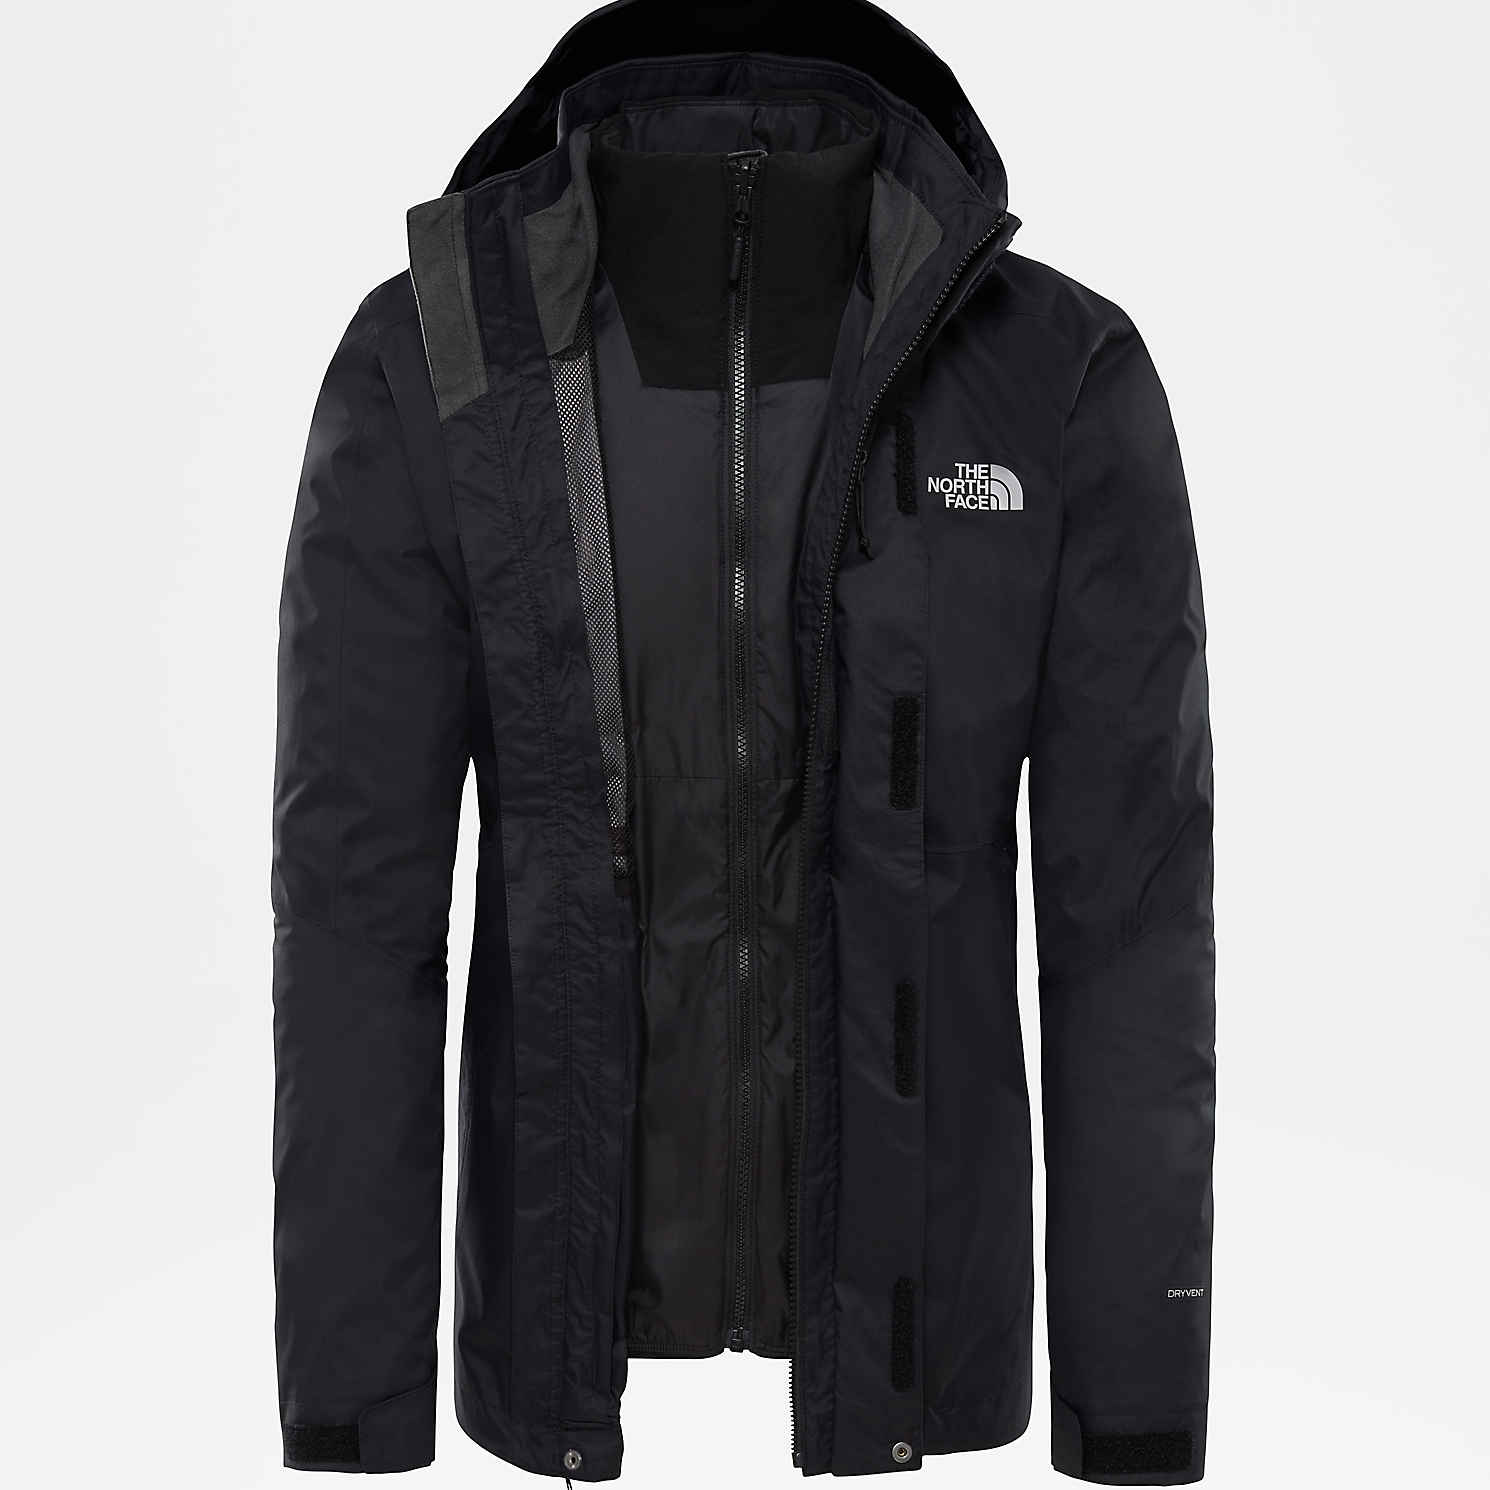 2eb92b99fce26 Kabru Triclimate - The North Face - K2 Planet